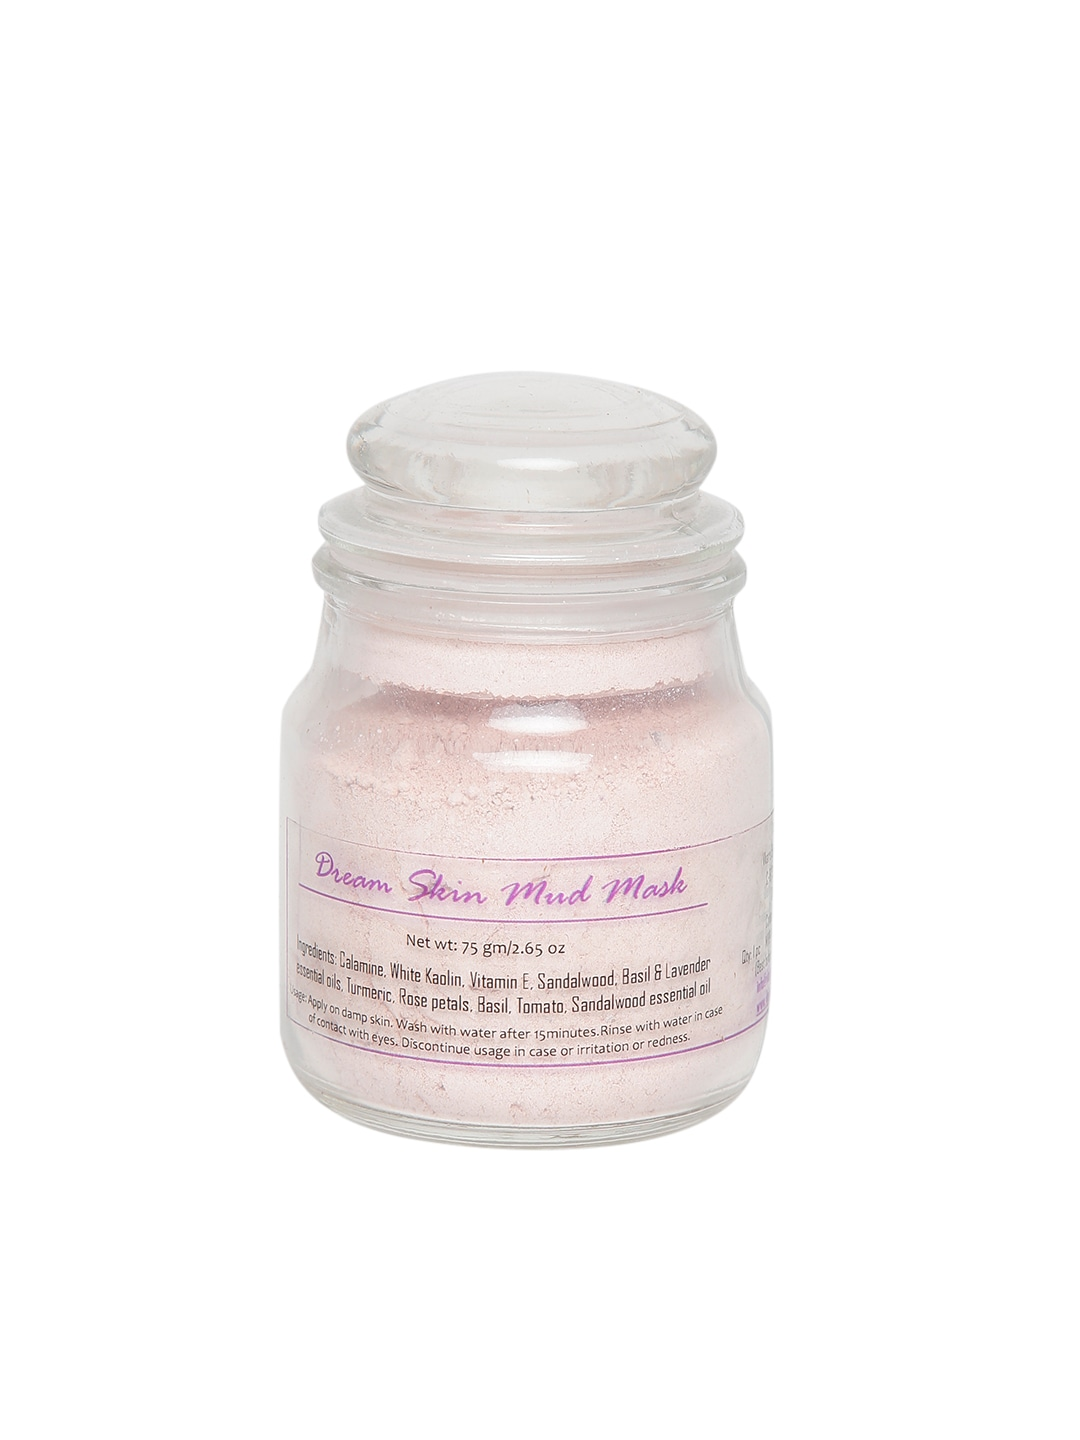 Fuschia Dream Skin Calamine Mud Mask image